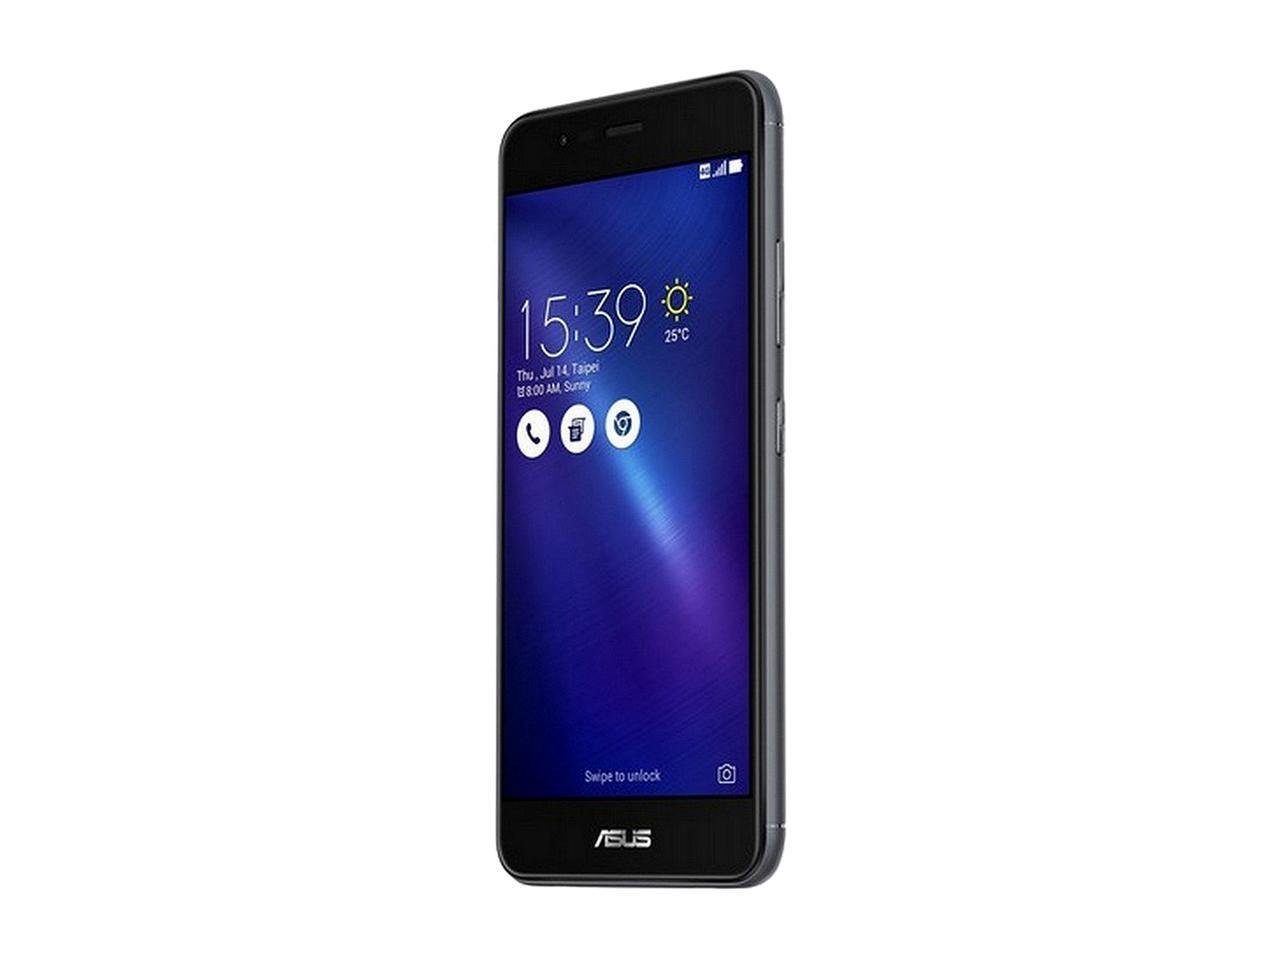 ASUS ZenFone 3 MAX ZC520TL Smartphone, 5.2-inch, 16GB (Titanium Gray) (Certified Refurbished) by Asus (Image #4)